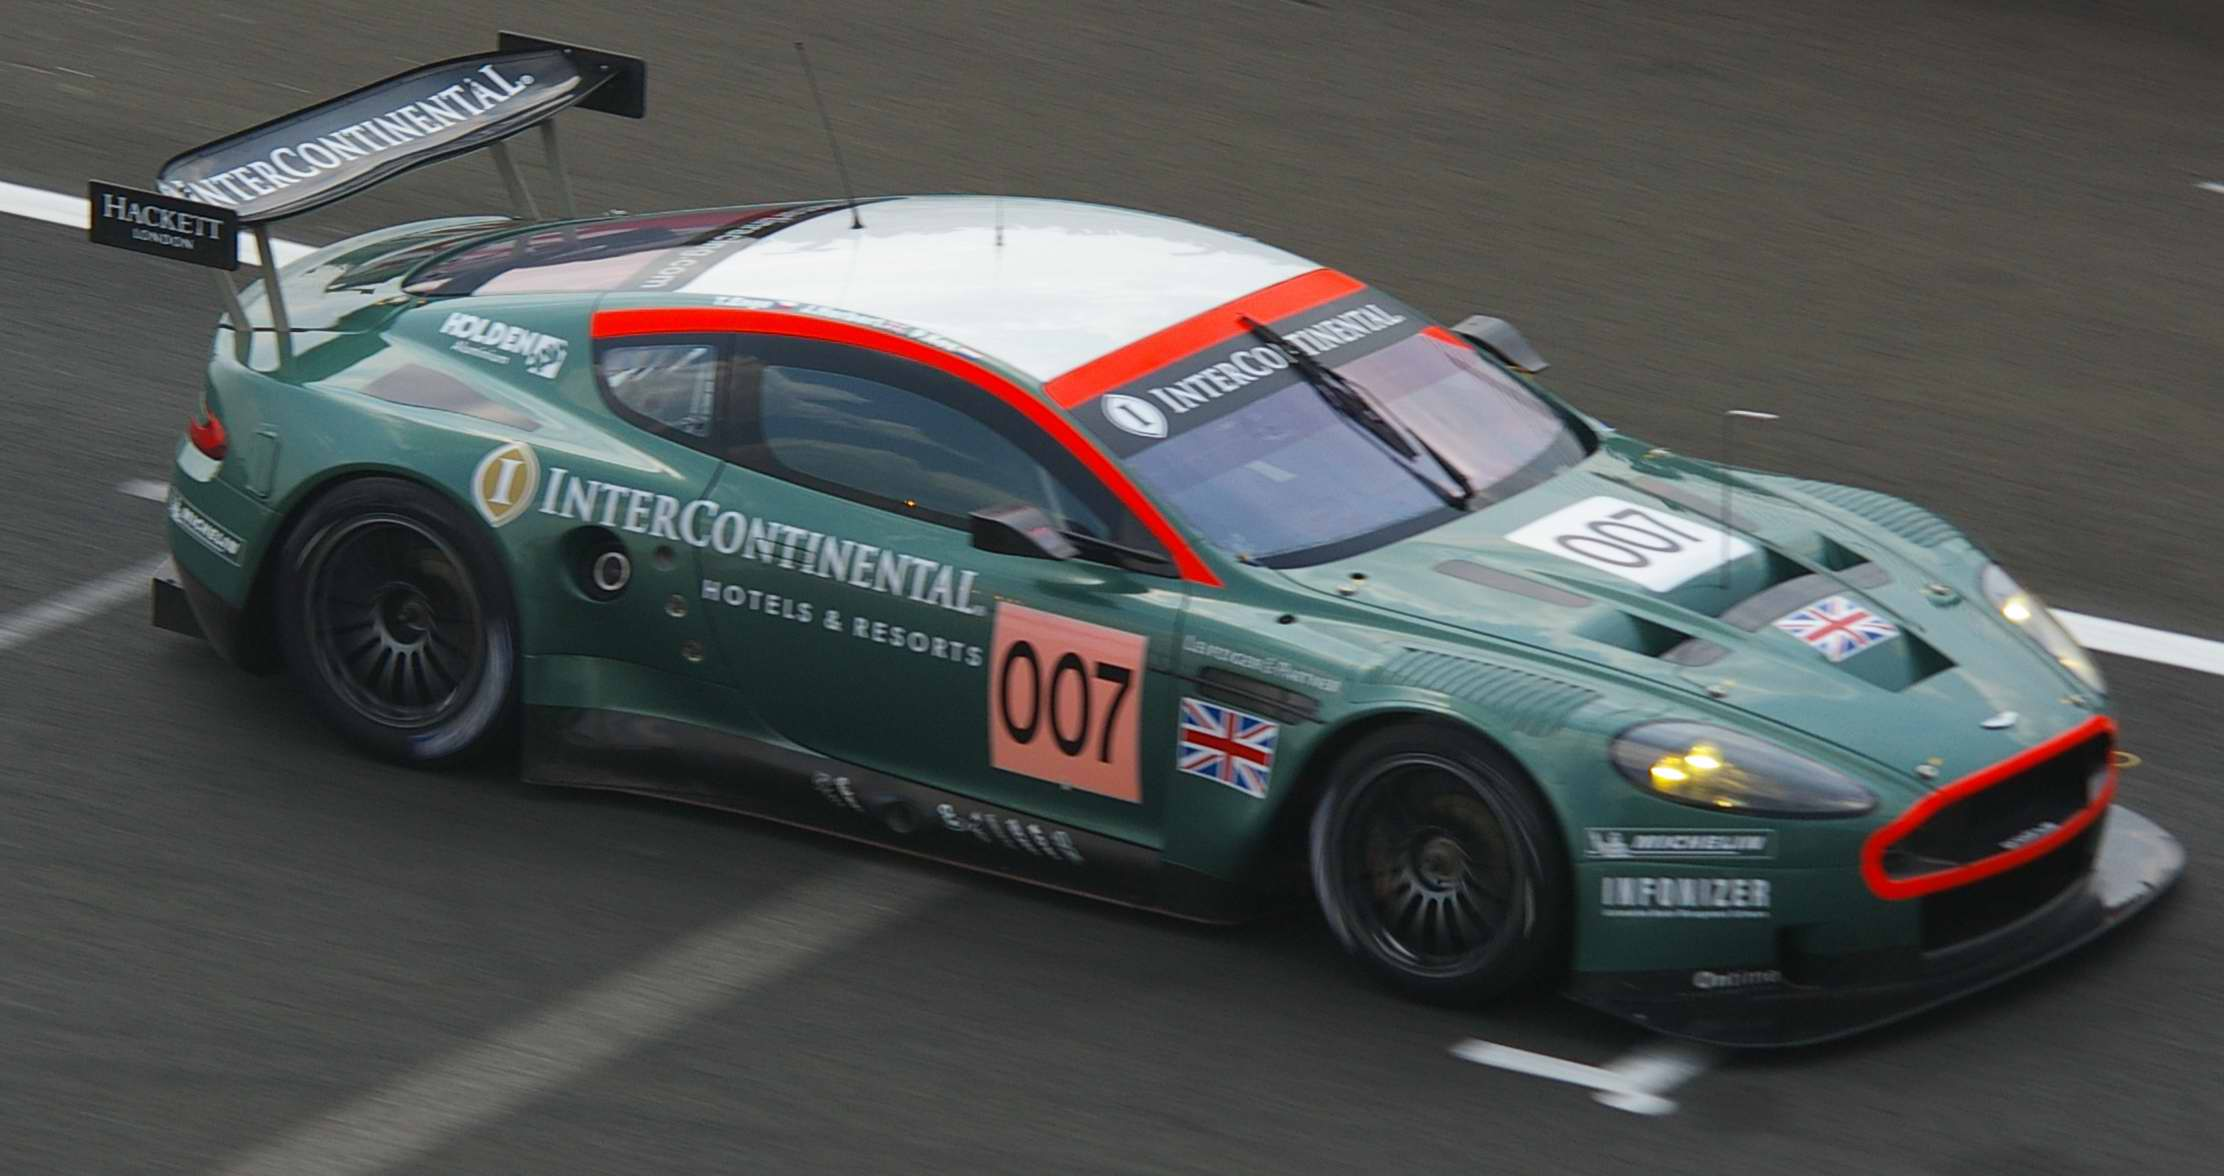 Aston martin dbr9 photo - 4